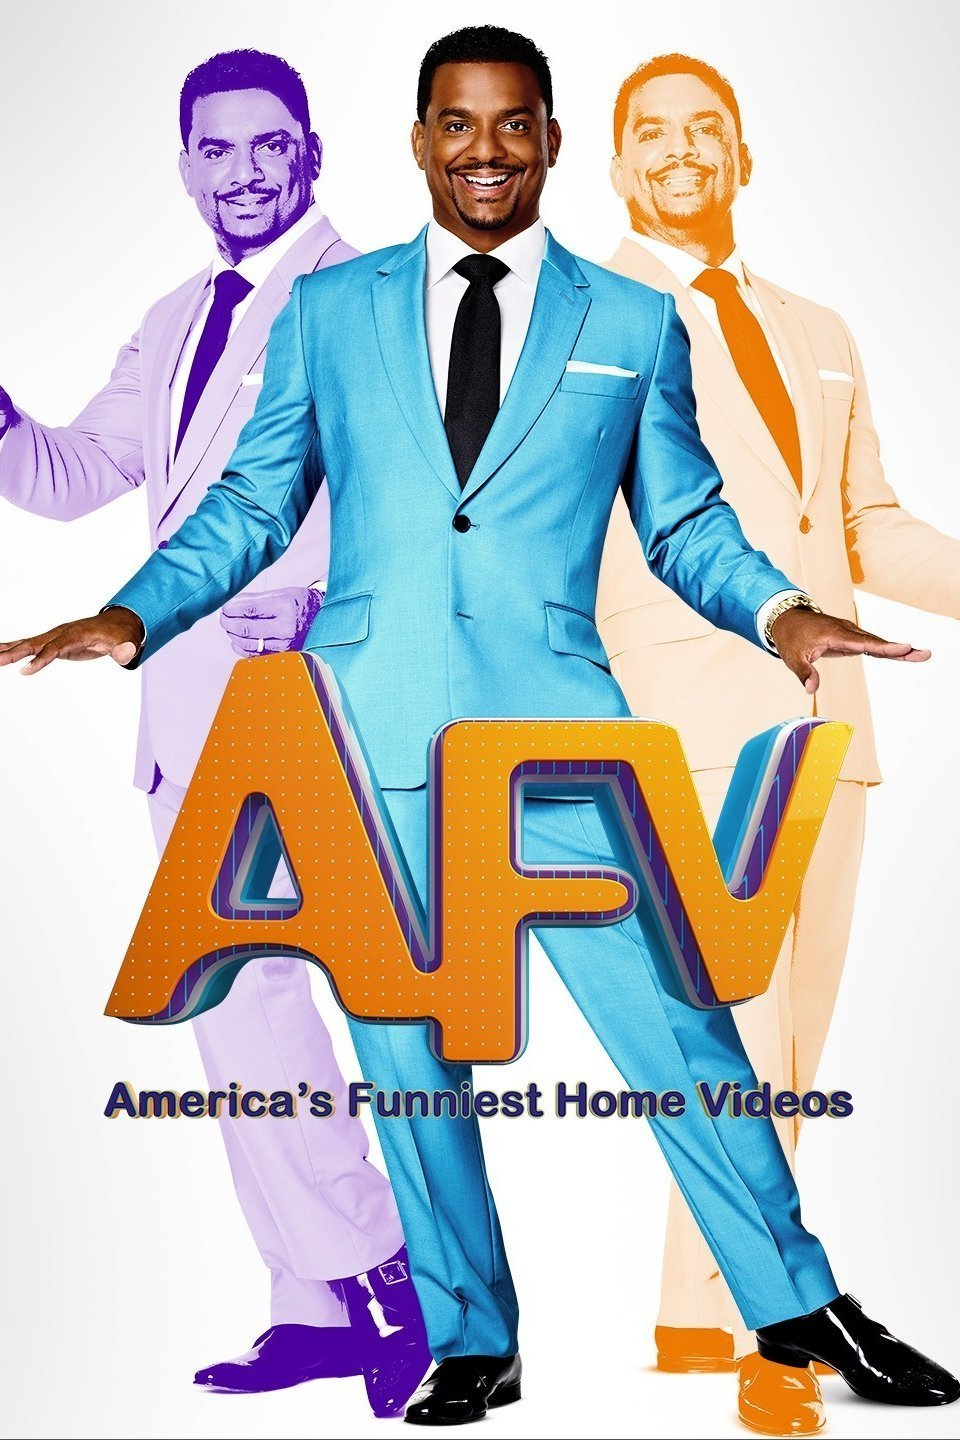 America\'s Funniest Home Videos (TV Series 1989– ) - IMDb